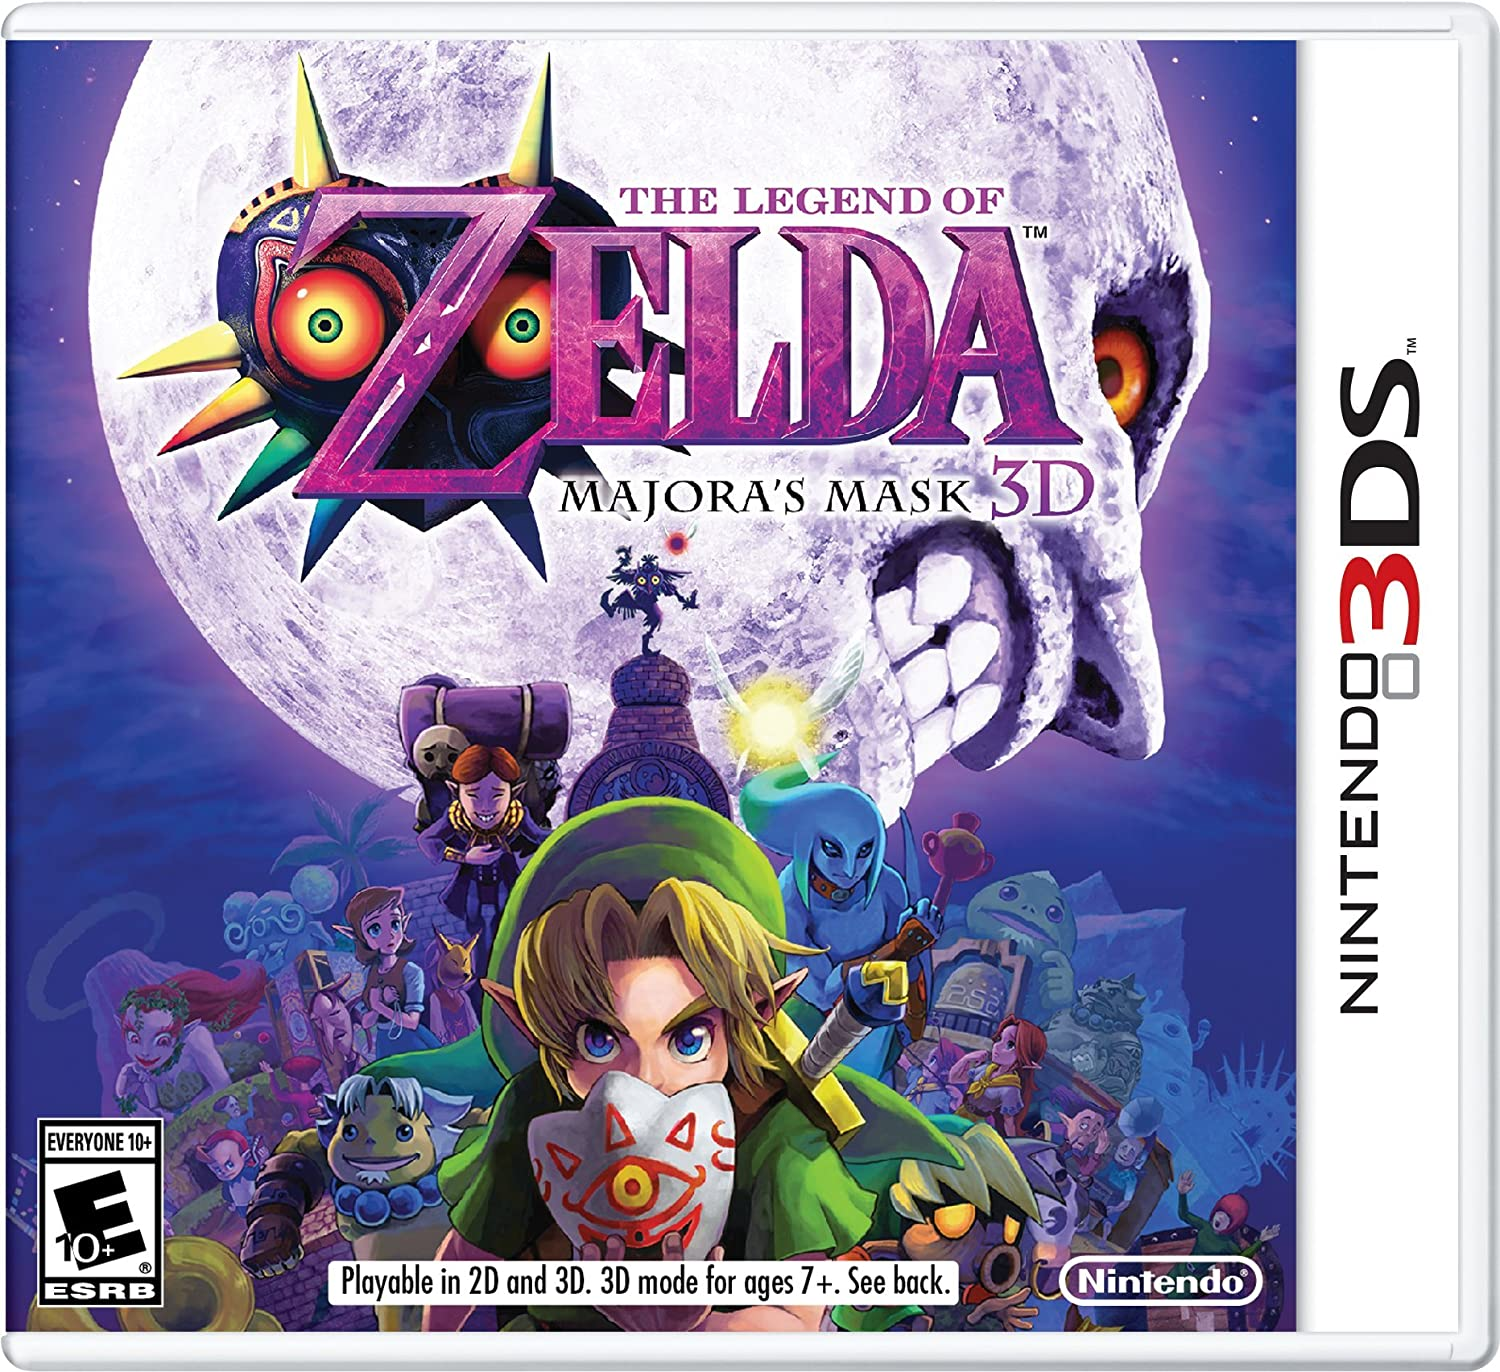 Amazon com: The Legend of Zelda: Majora's Mask 3D: 3DS